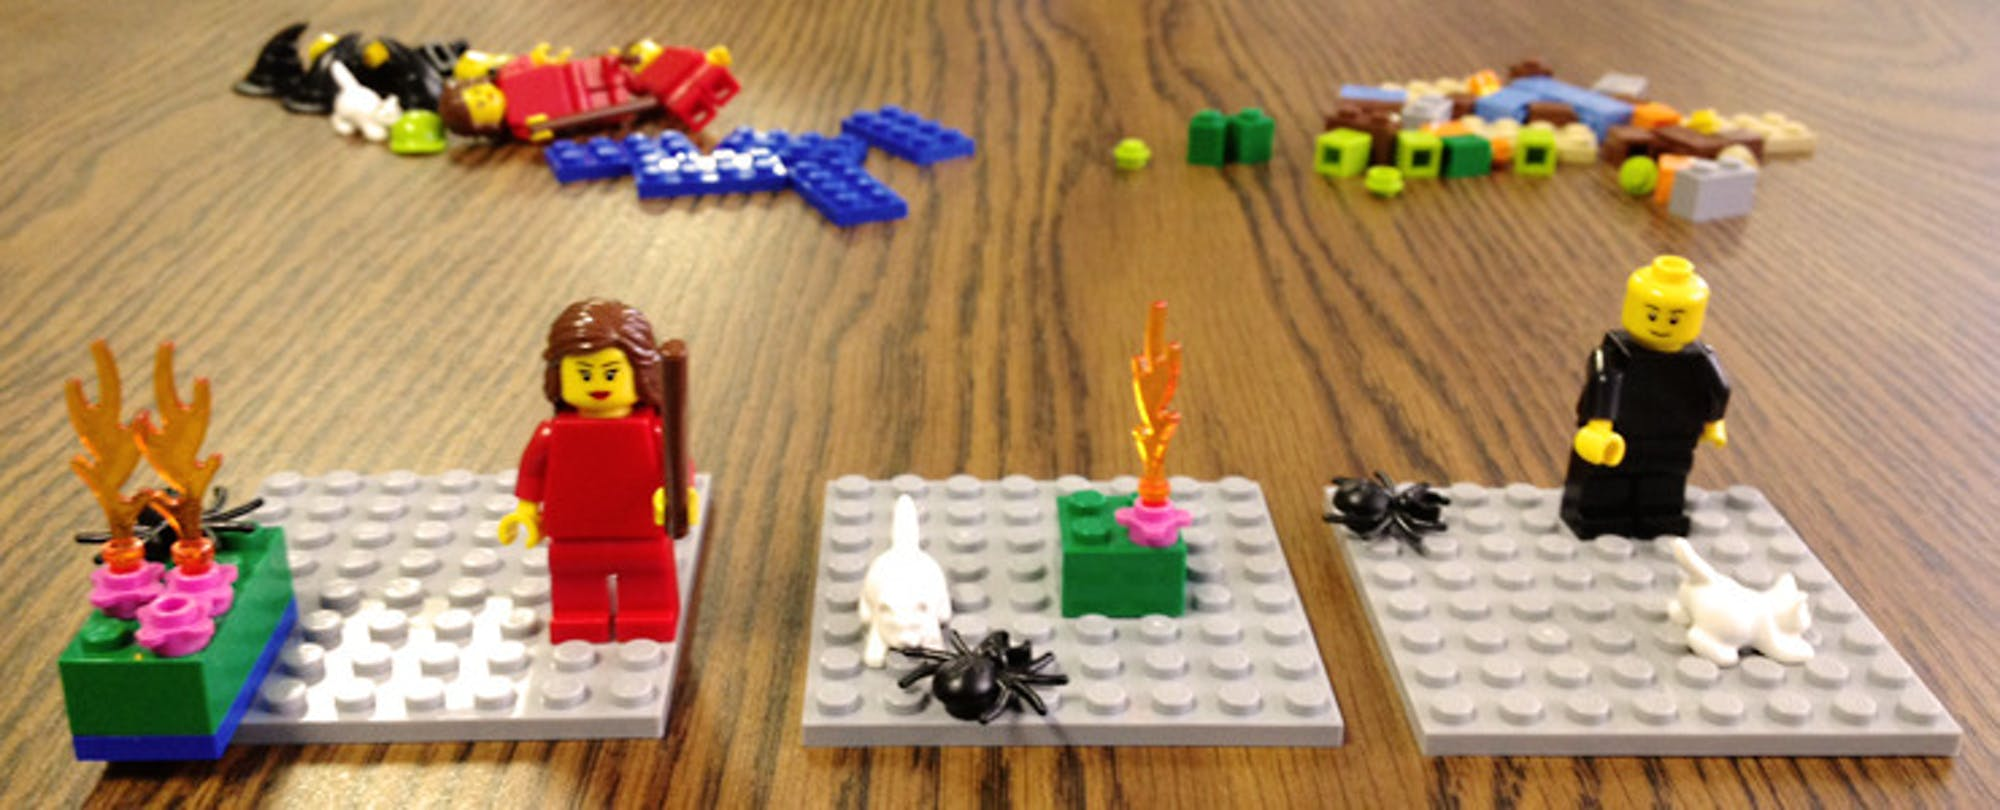 Hands-on with LEGO StoryStarter